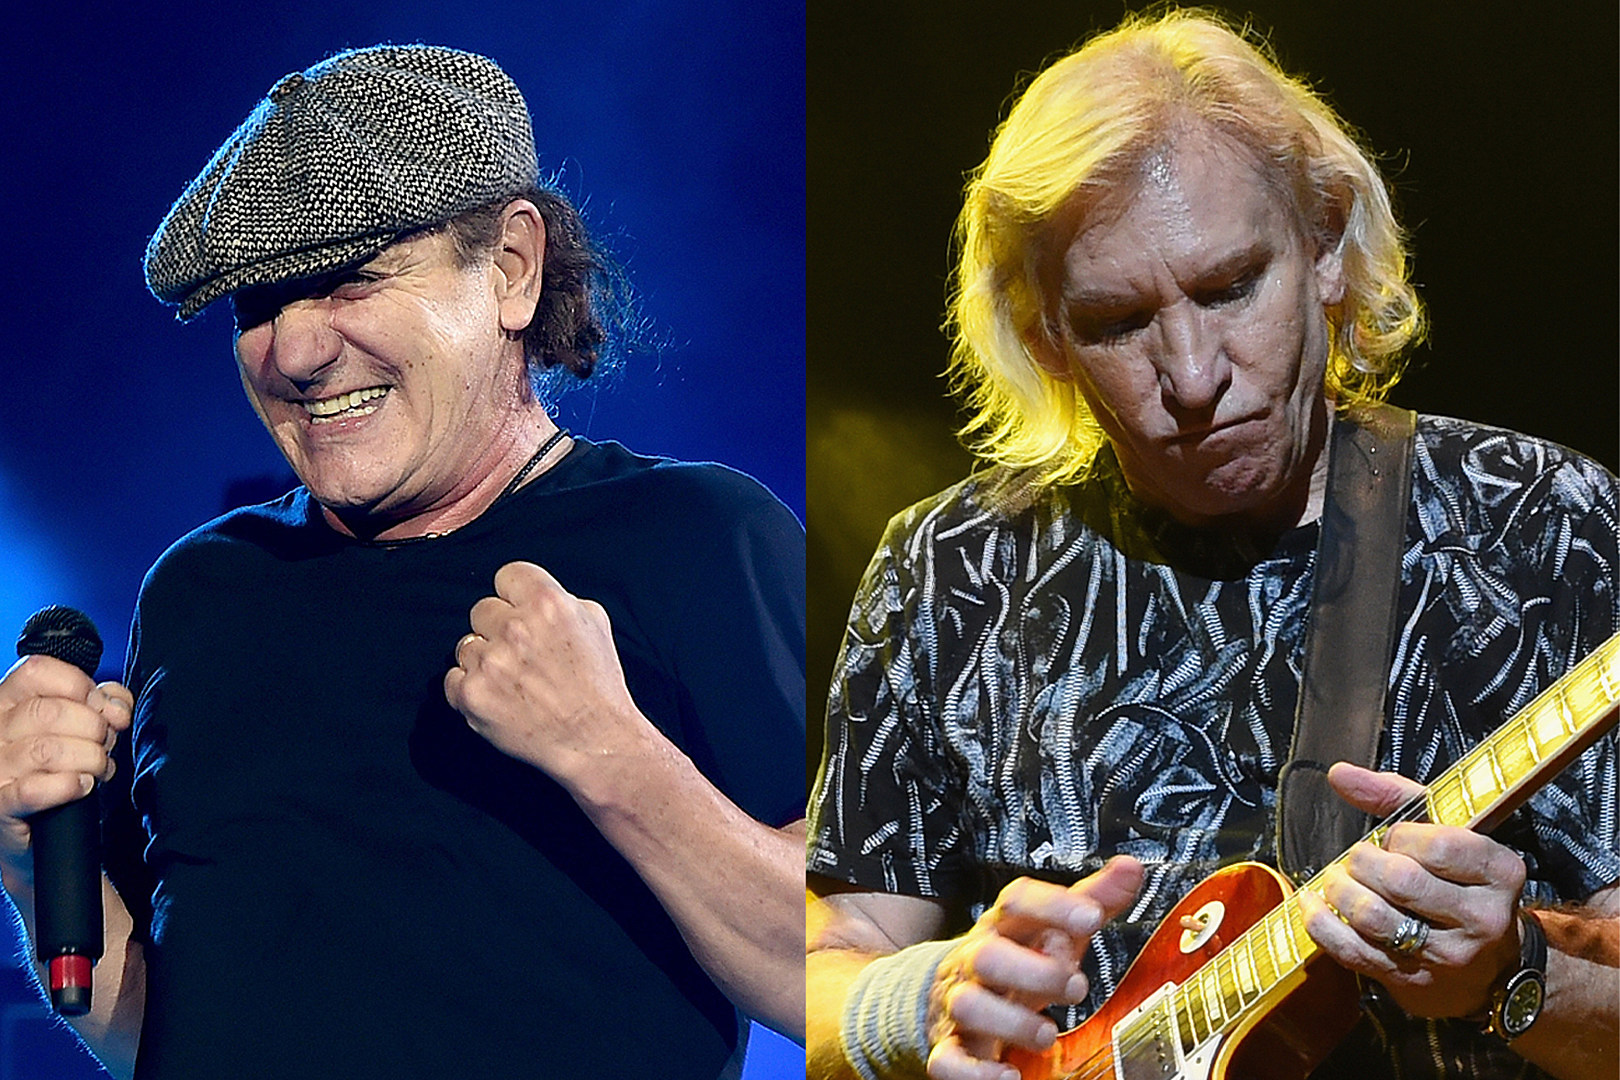 AC/DC's Brian Johnson + The Eagles' Joe Walsh Are Making Music Together